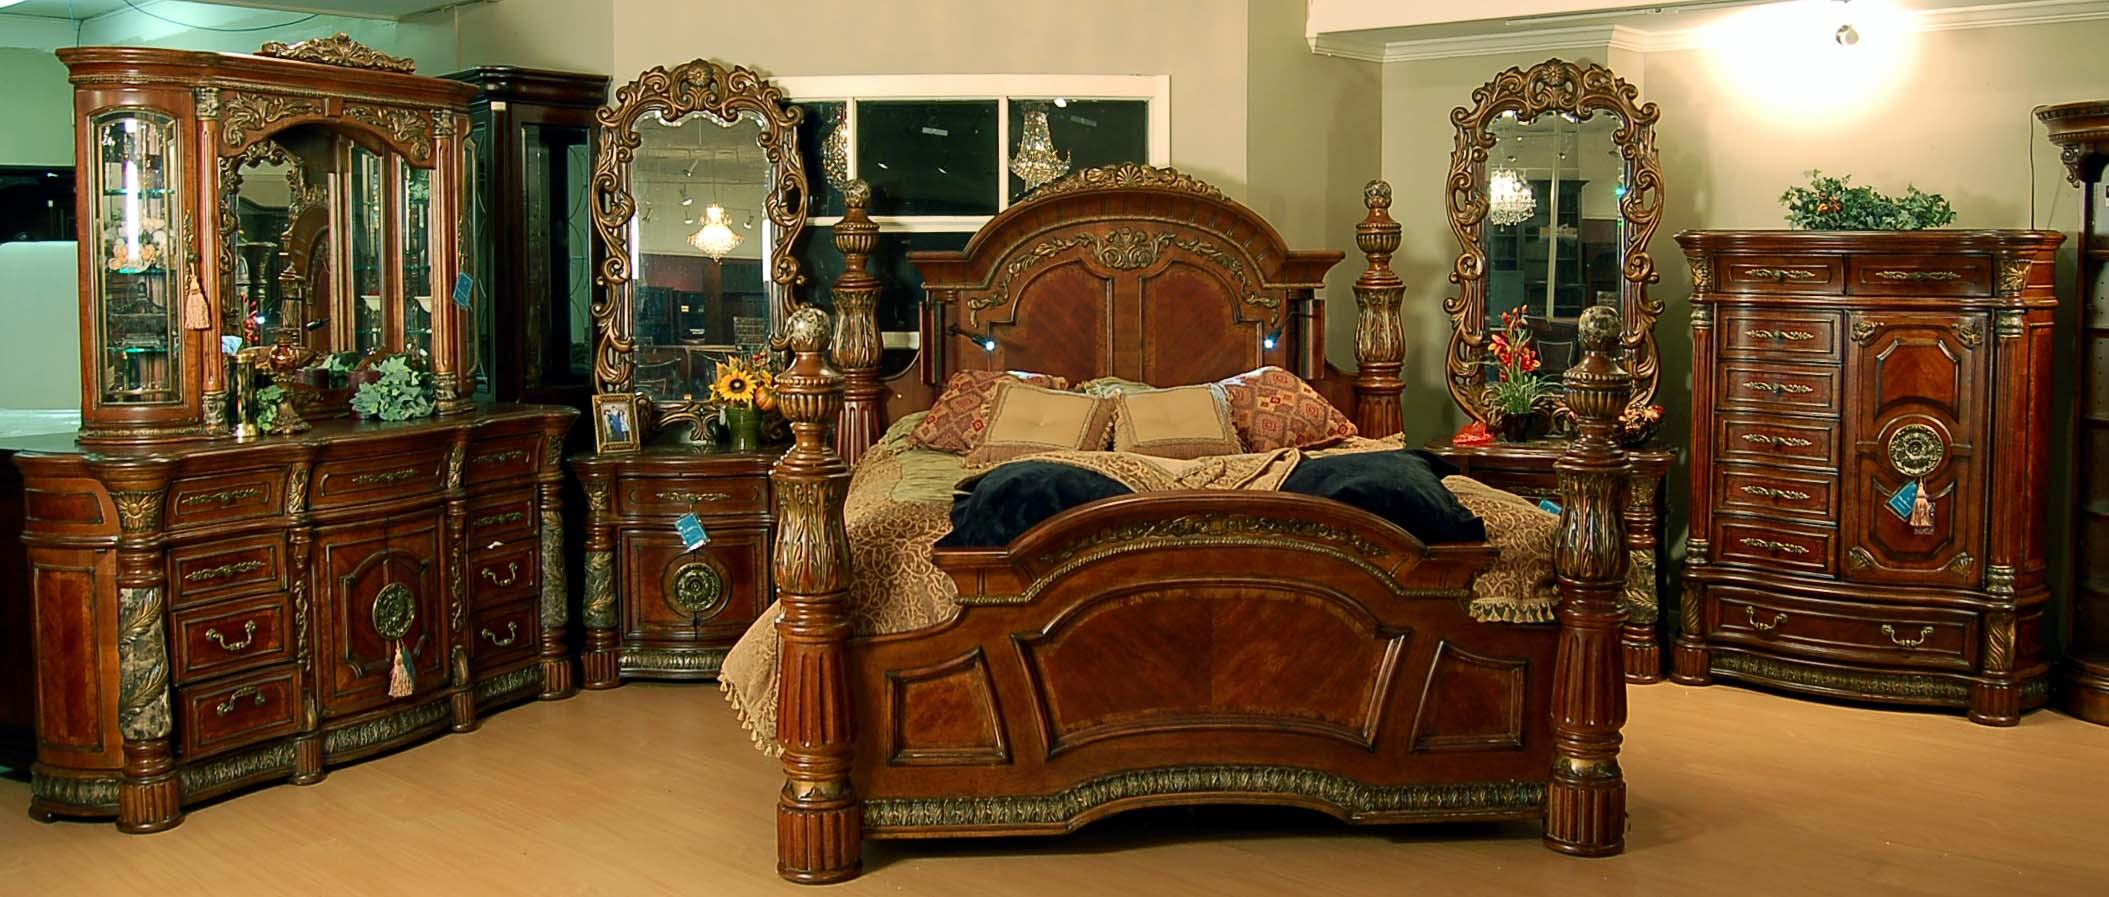 details about classic romantic old world spanish chestnut bedroom set